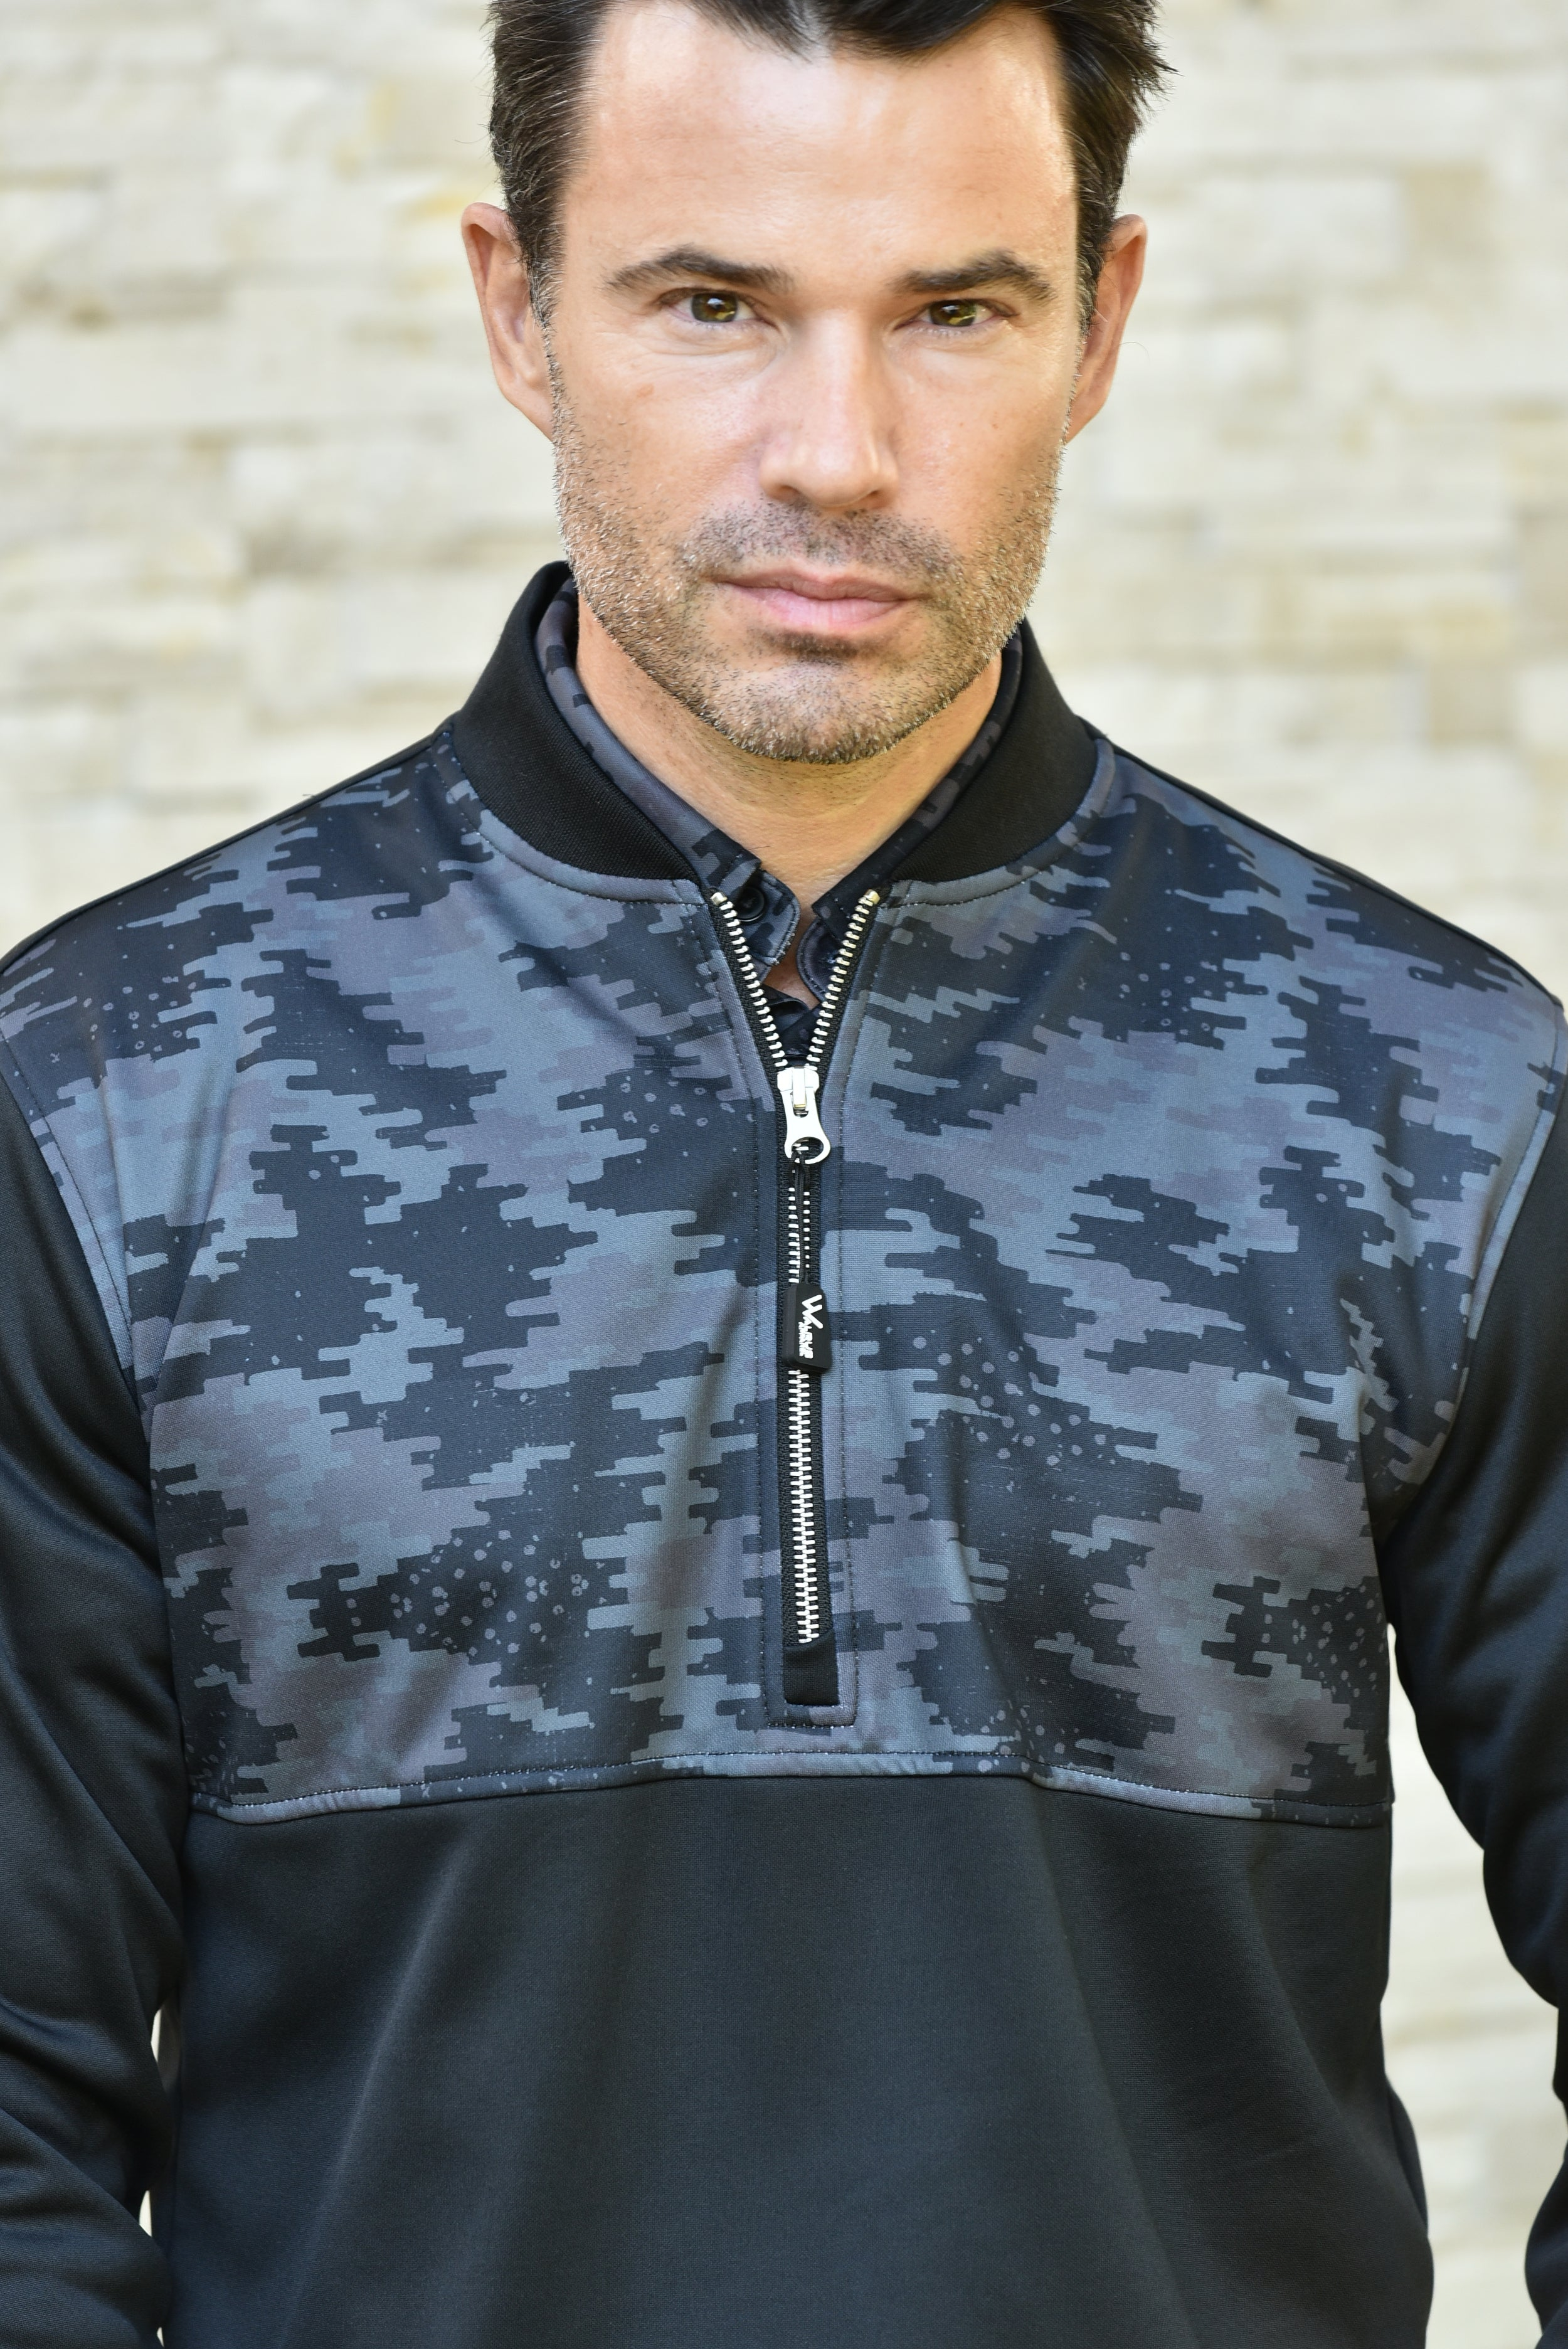 Raynor Camo Chest Mens Golf Midlayer Pullover - Black by  Walrus Apparel